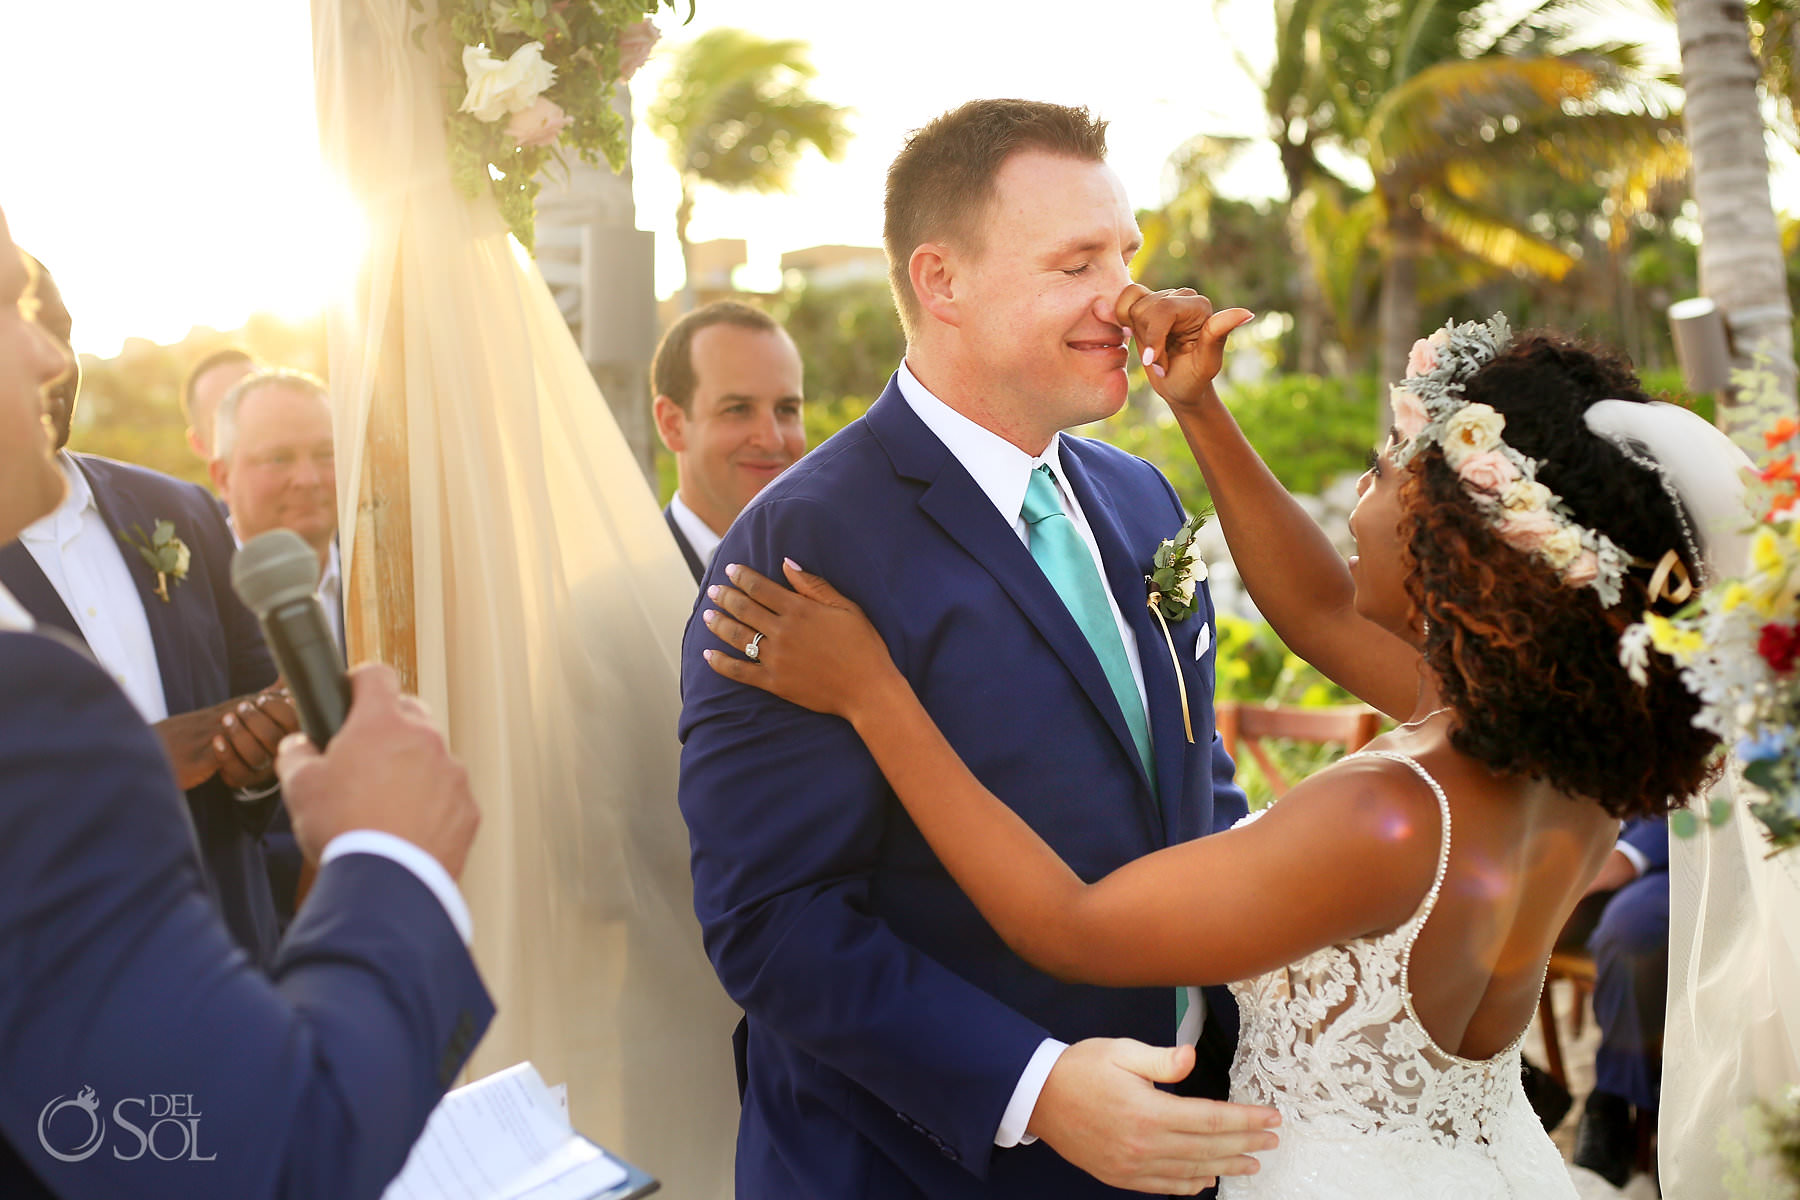 adorable wedding moment bride touches groom's nose sunset beach wedding Hotel Xcaret Mexico